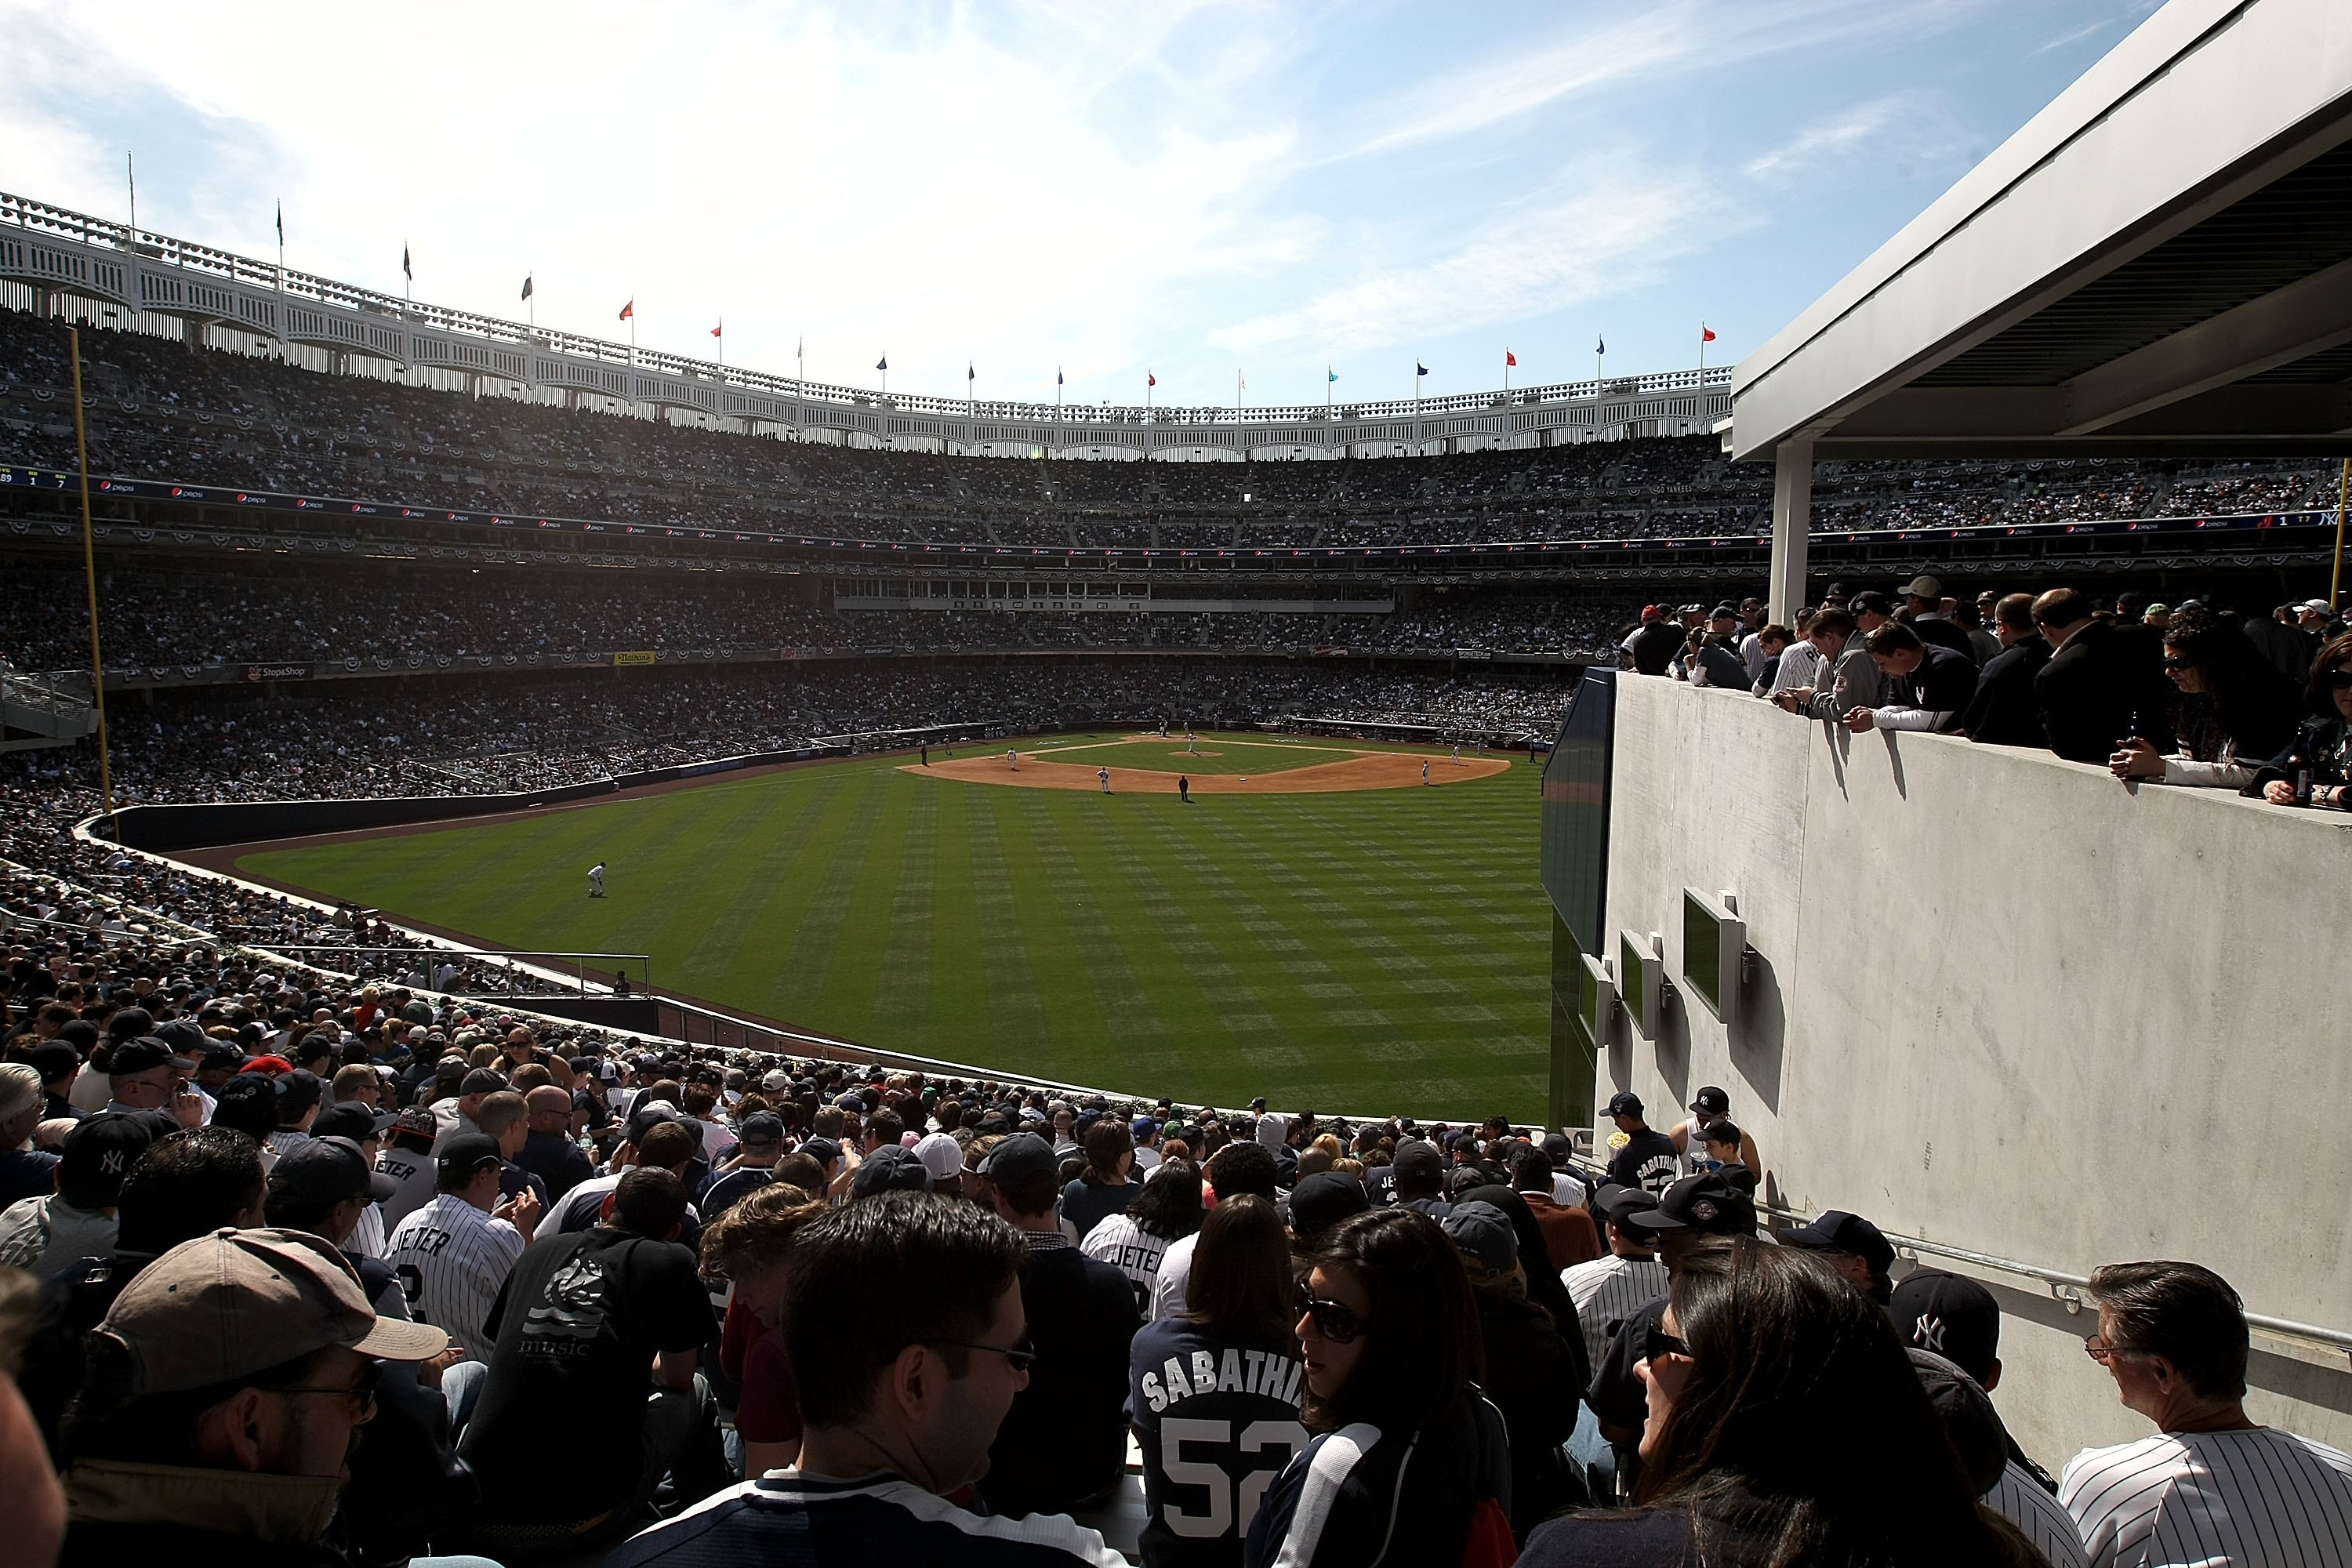 NEW YORK - APRIL 16:  A general view of the obstructed view seats in the bleachers as the  Cleveland Indians play the New York Yankees during opening day at the new Yankee Stadium on April 16, 2009 in the Bronx borough of New York City, New York. This is